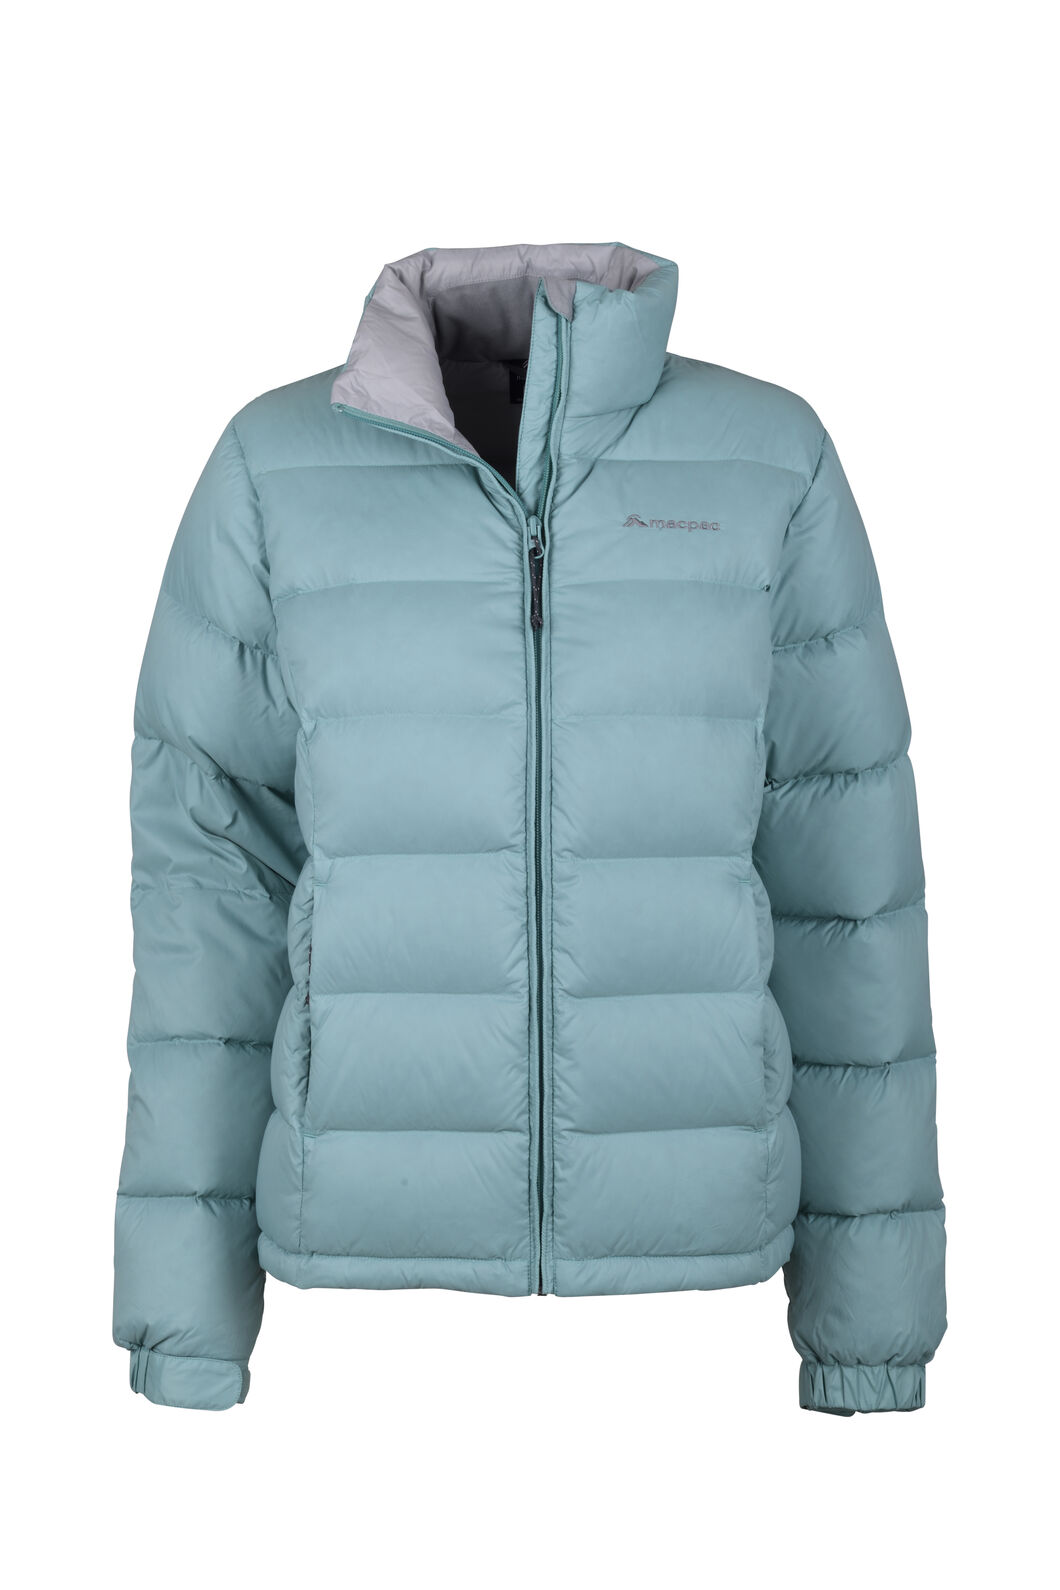 Macpac Halo Down Jacket - Women's, Canton, hi-res